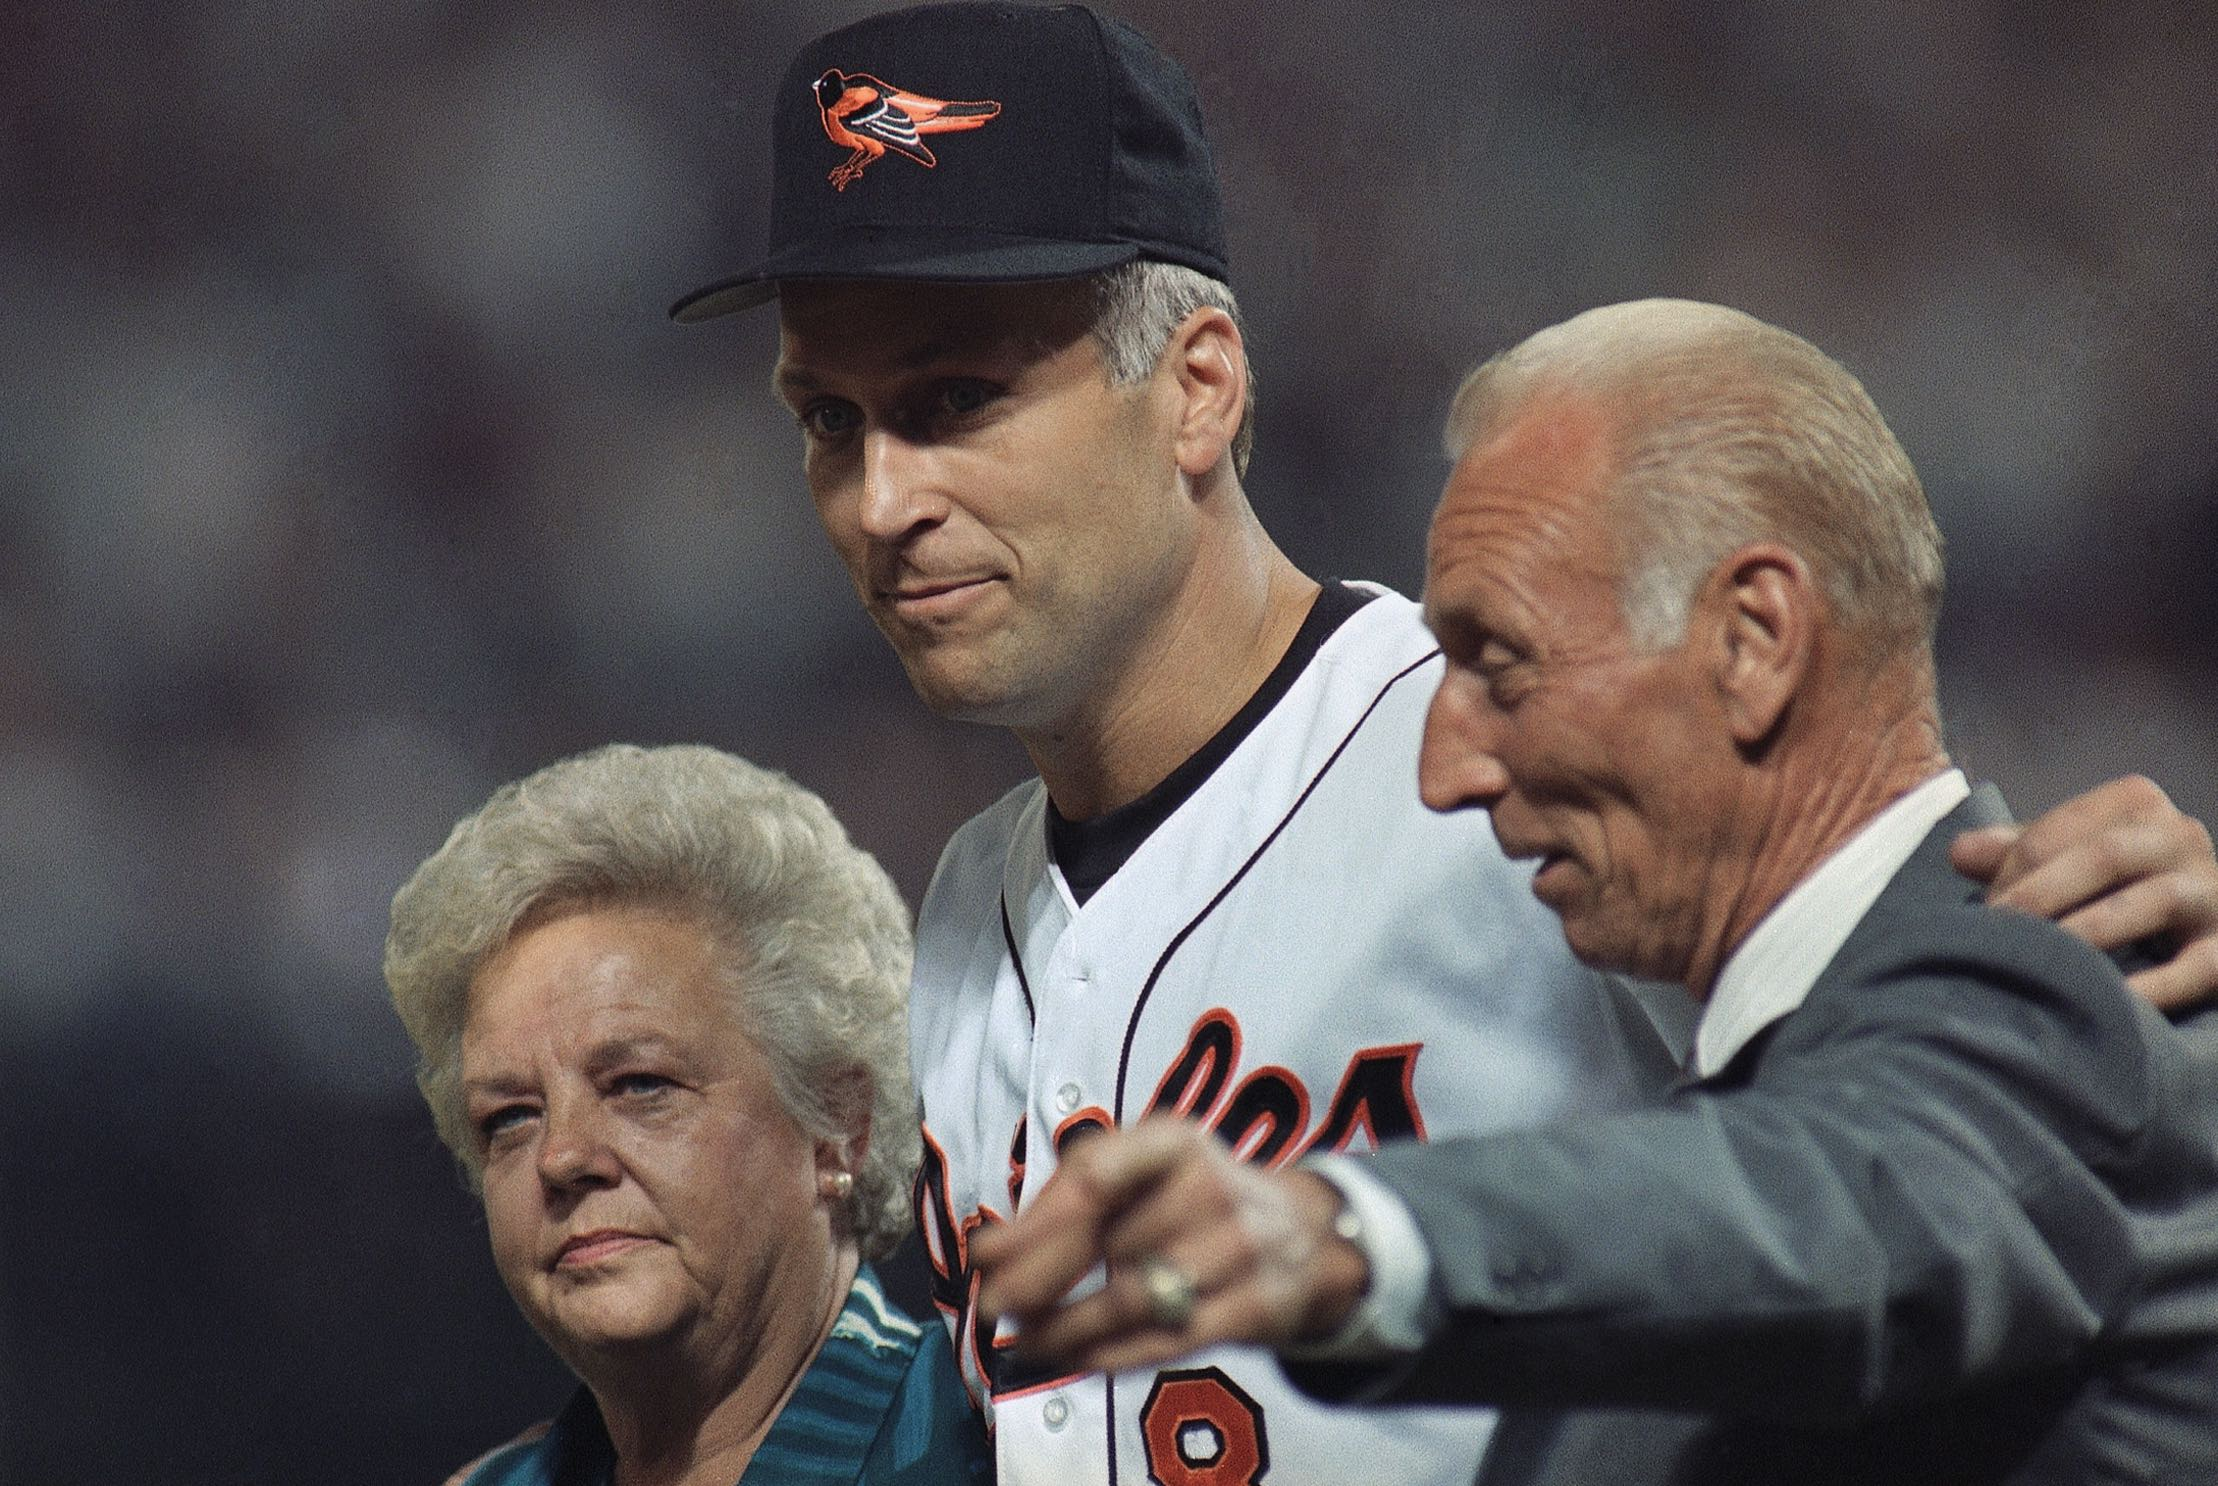 Baltimore Orioles shortstop Cal Ripken, Jr., center, walk onto the field with his parent Violet and Cal Ripken Sr. for post game ceremonies Wednesday, Sep 6,1995 at Baltimore. Ripken broke Lou Gehrig's record of 2,130 consecutive games Wednesday as Orioles beat the California Angeles 4-2. (AP Photo/Denis Paquin)